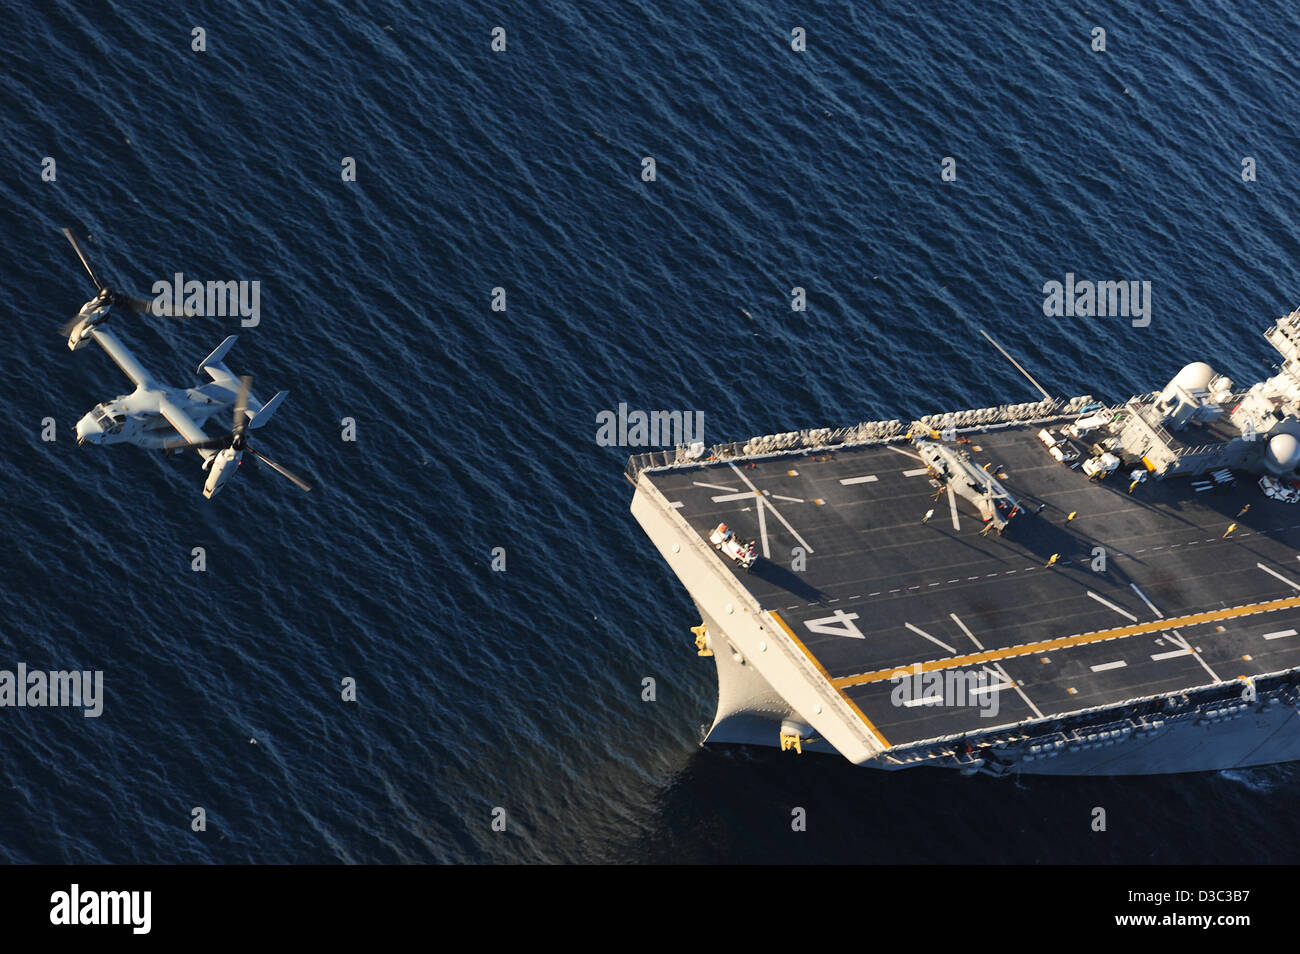 US Navy MV-22 Osprey take off from the multipurpose amphibious assault ship USS Boxer February 13, 2013 underway - Stock Image